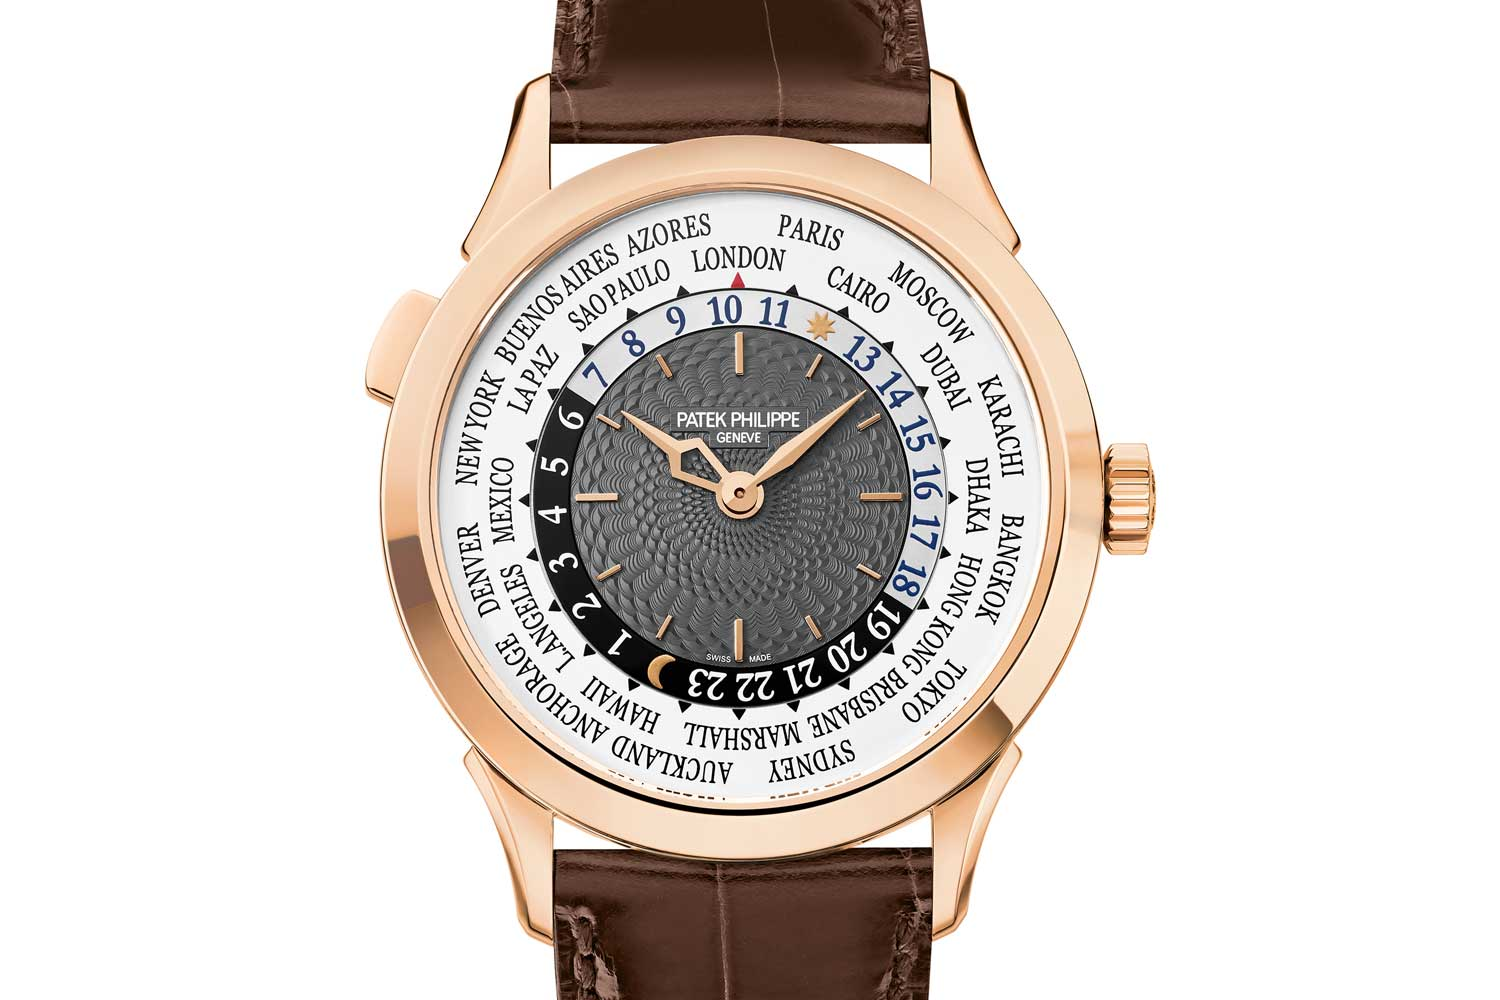 The watch's dial featured the most elaborate guilloché pattern yet with subtle waves radiating from the cannon pinion, abbreviated by appealing and original flat, wide teardrop shaped elements. (Image: Patek Philippe)